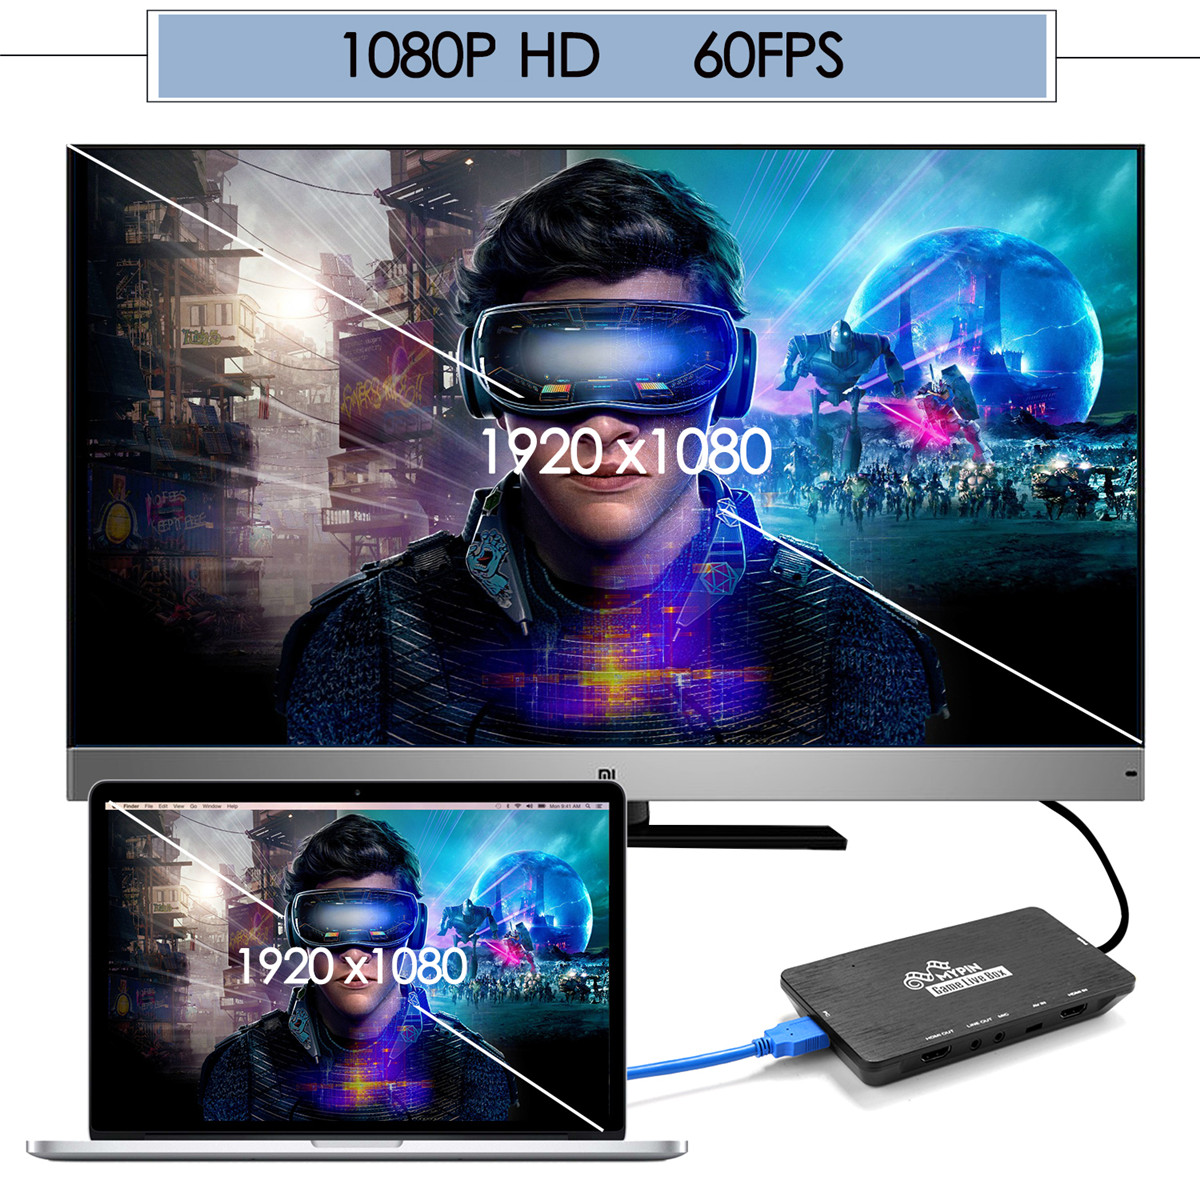 There are YouTube, Facebook for the recording / live delivery of the game  that AGPtEK HDMI game capture video capture